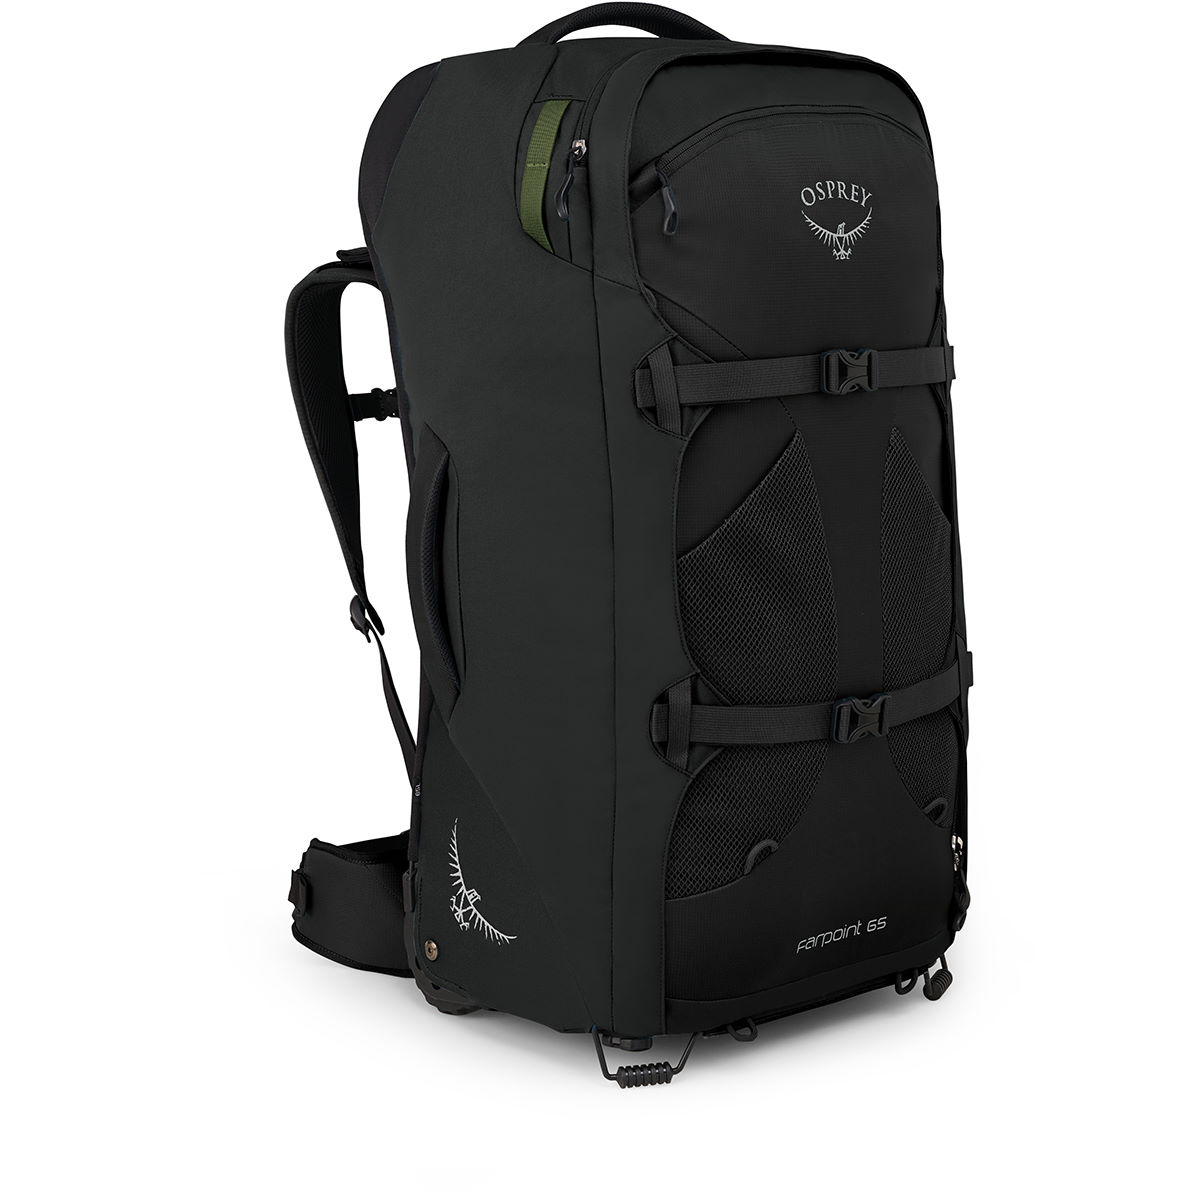 Osprey Osprey Farpoint Wheels 65 Bag   Travel Bags